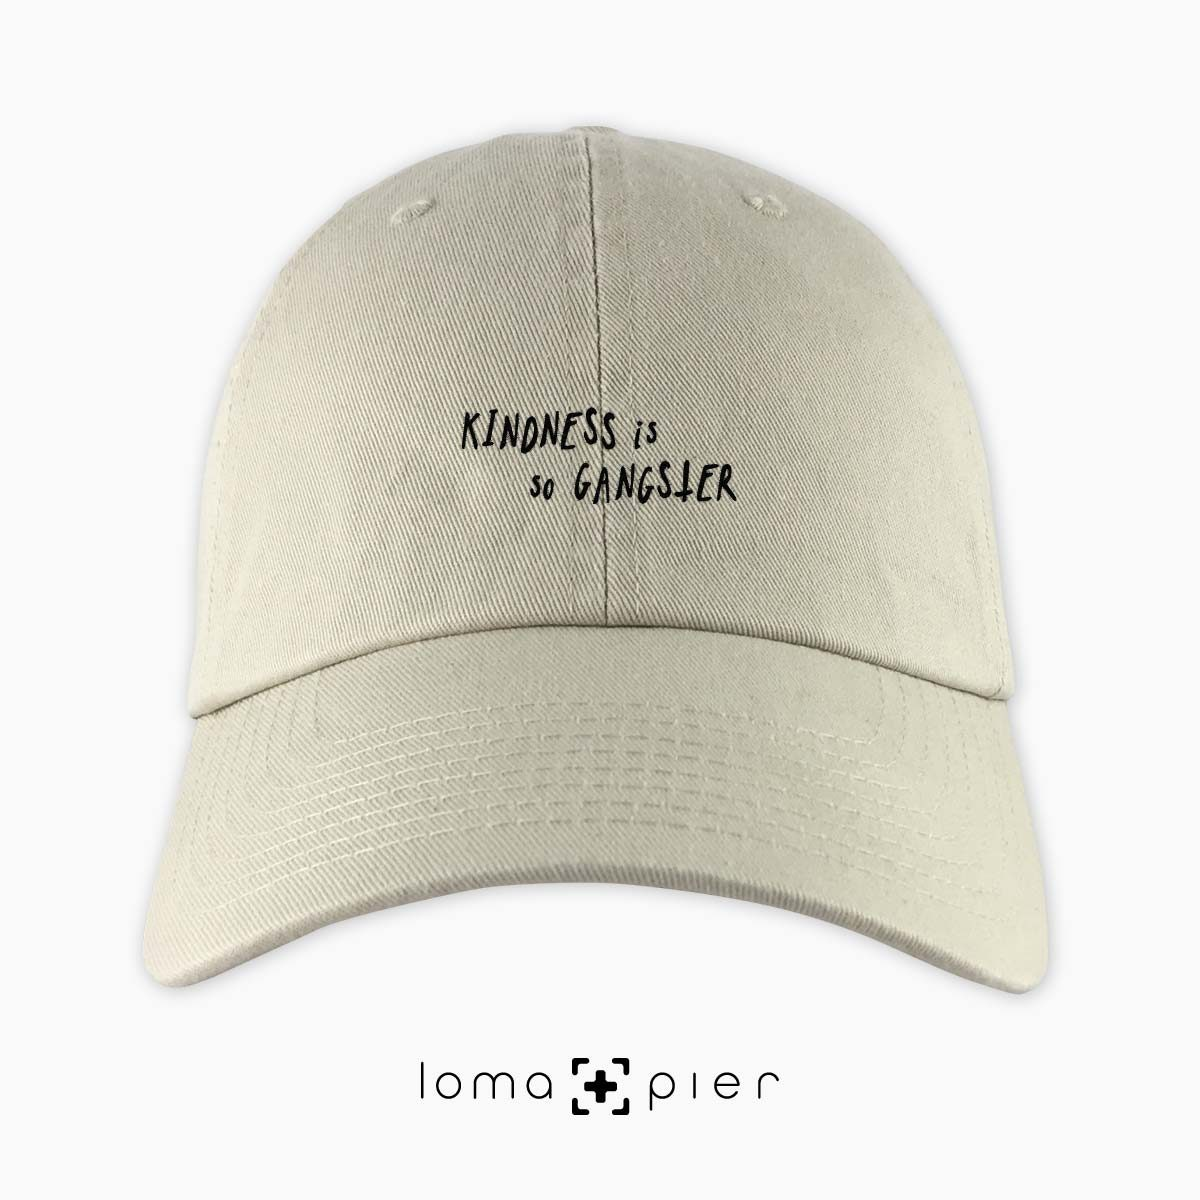 KINDNESS IS SO GANGSTER typography embroidered on a khaki unstructured dad hat with black thread by loma+pier hat store made in the USA